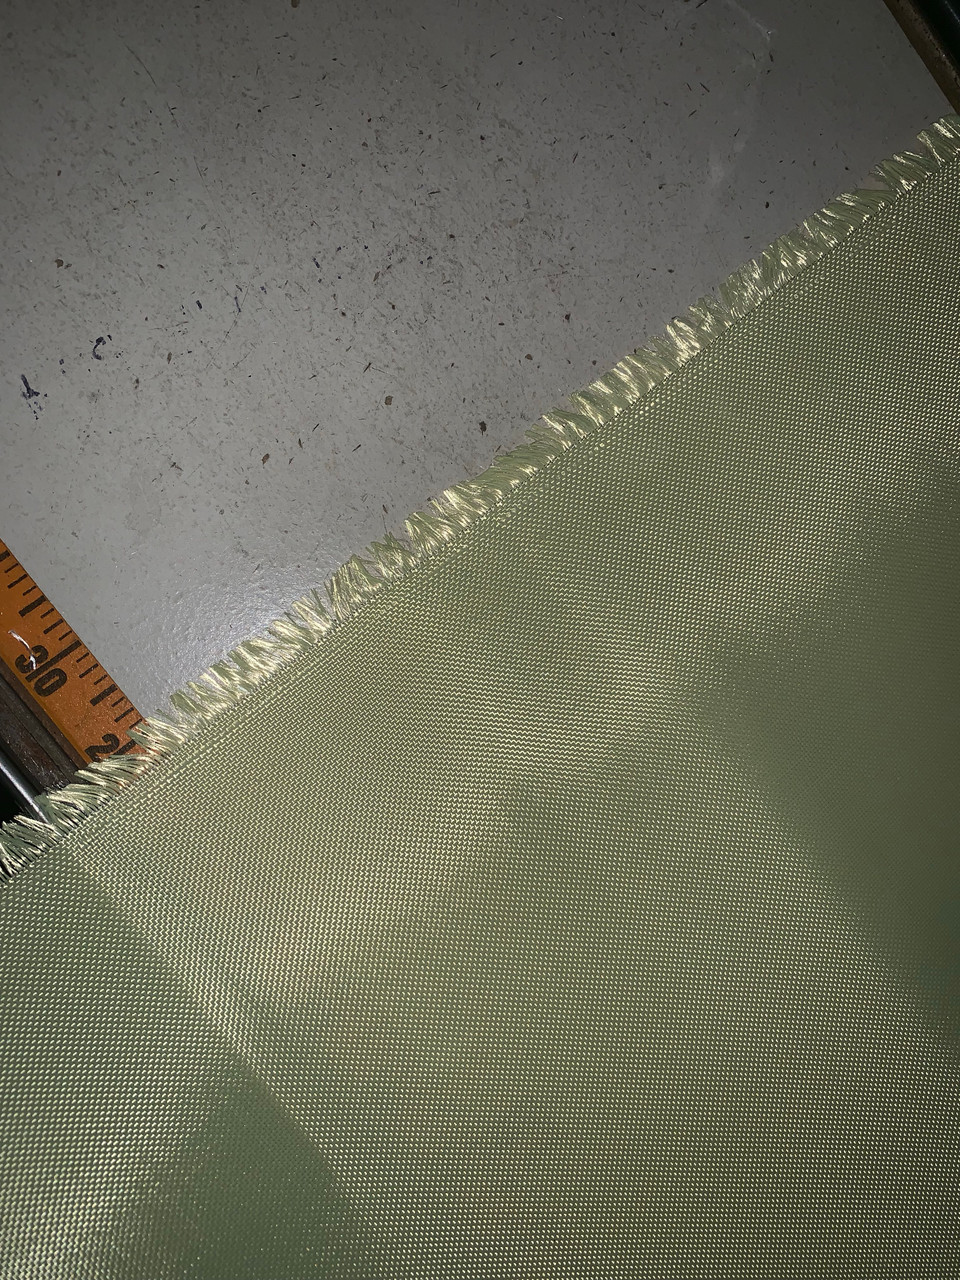 "12"" x 9"" KM2 Style 600D Ballistic Grade Fabric Swatch. FREE SHIPPING!"